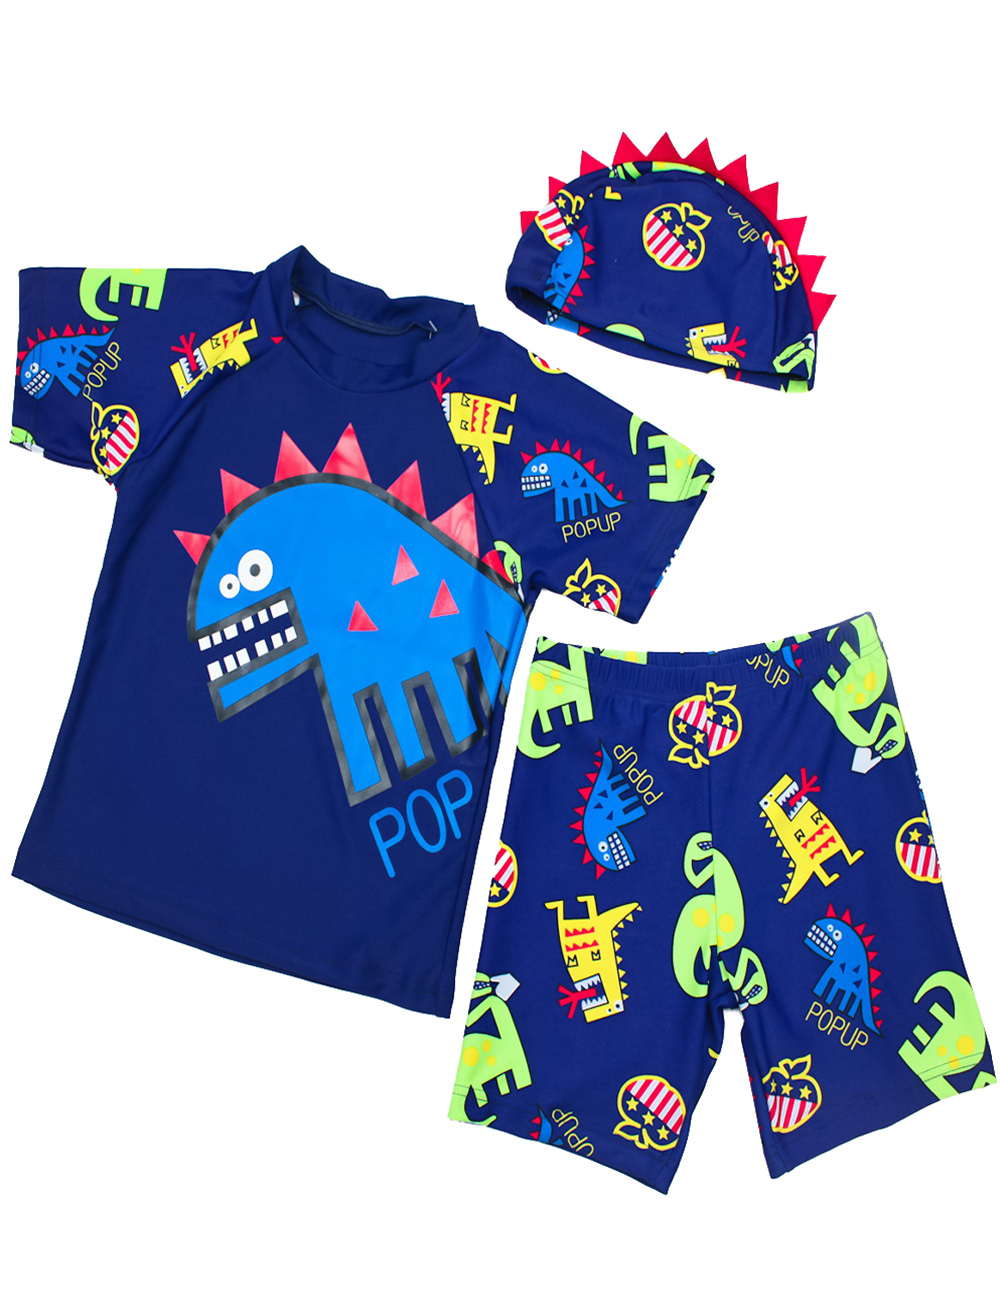 260a78cc65e Aliexpress.com   Buy 2018 2 7Y Children Baby Swimming Suit Dinasoal Pattern  Boys Swimsuit Beachwear Kids Bathing Suits Top Shorts with Hat 3 Colors  from ...